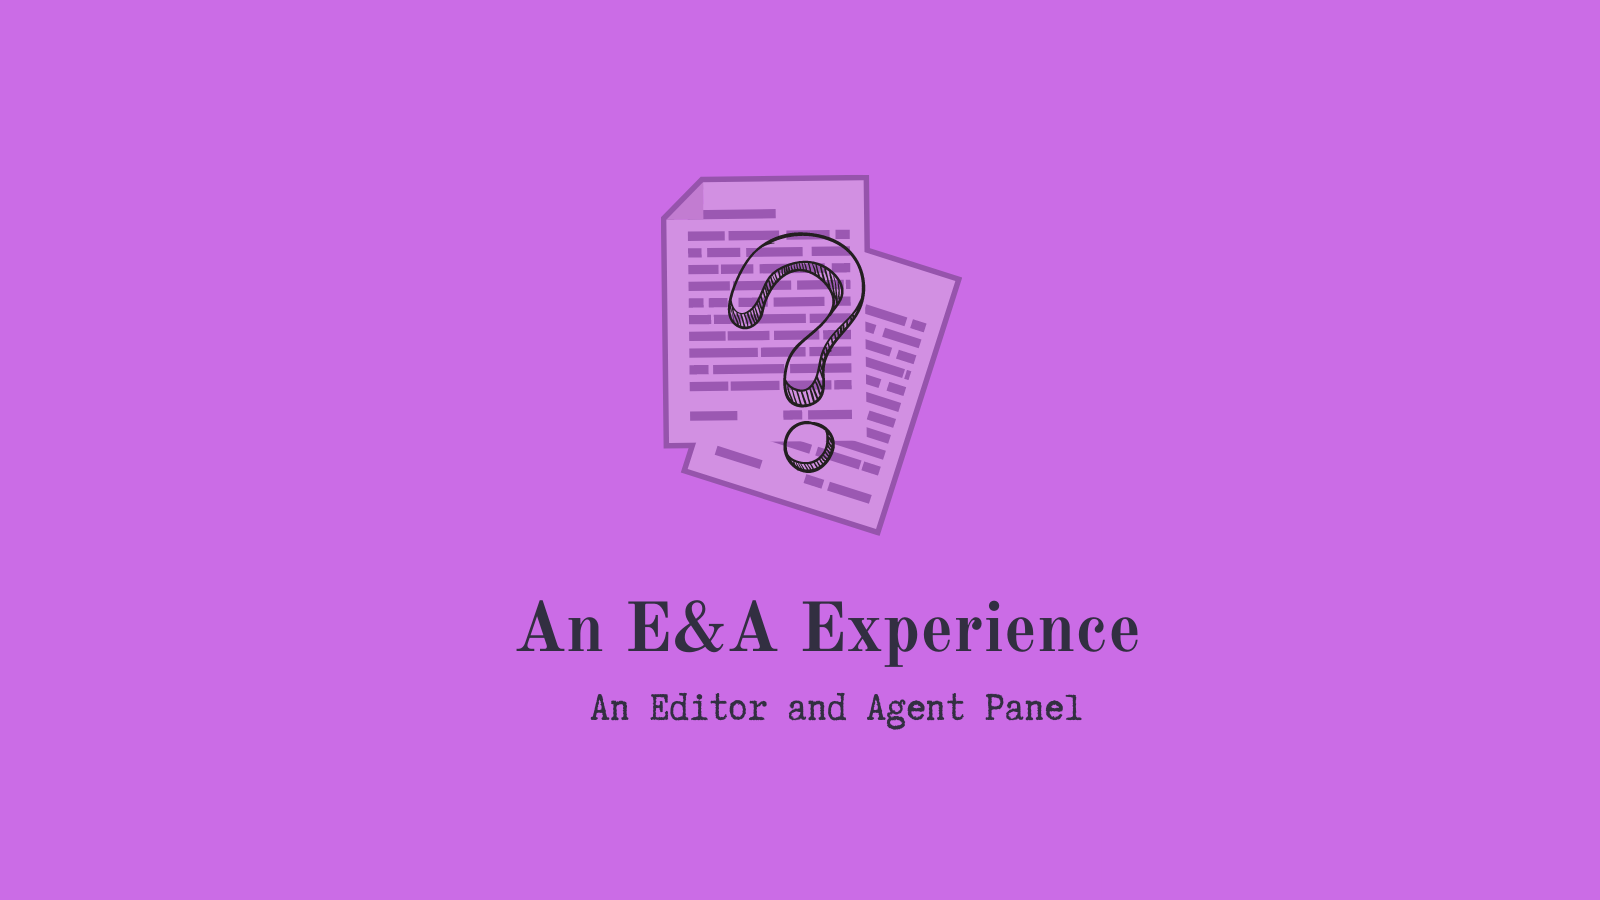 Twitter post for An E&A experience